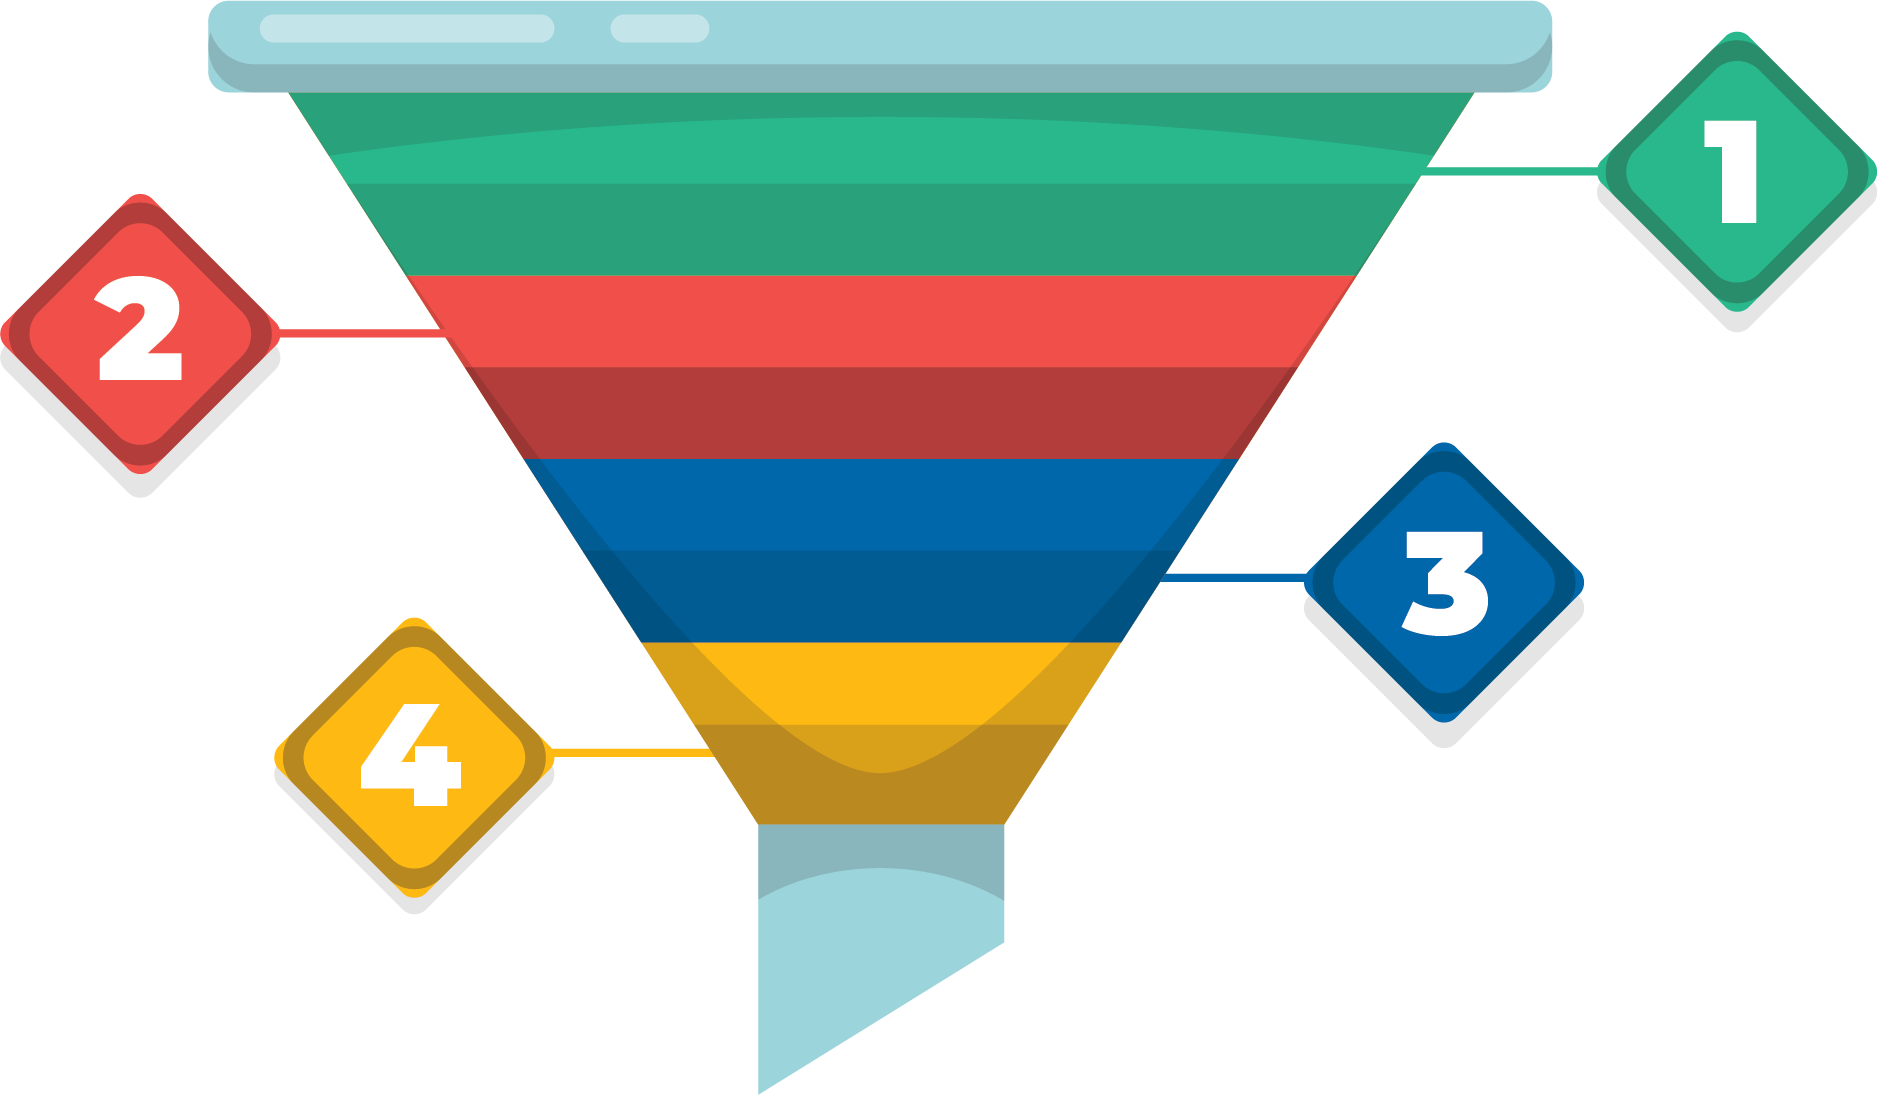 Diagram of a simplified sales funnel